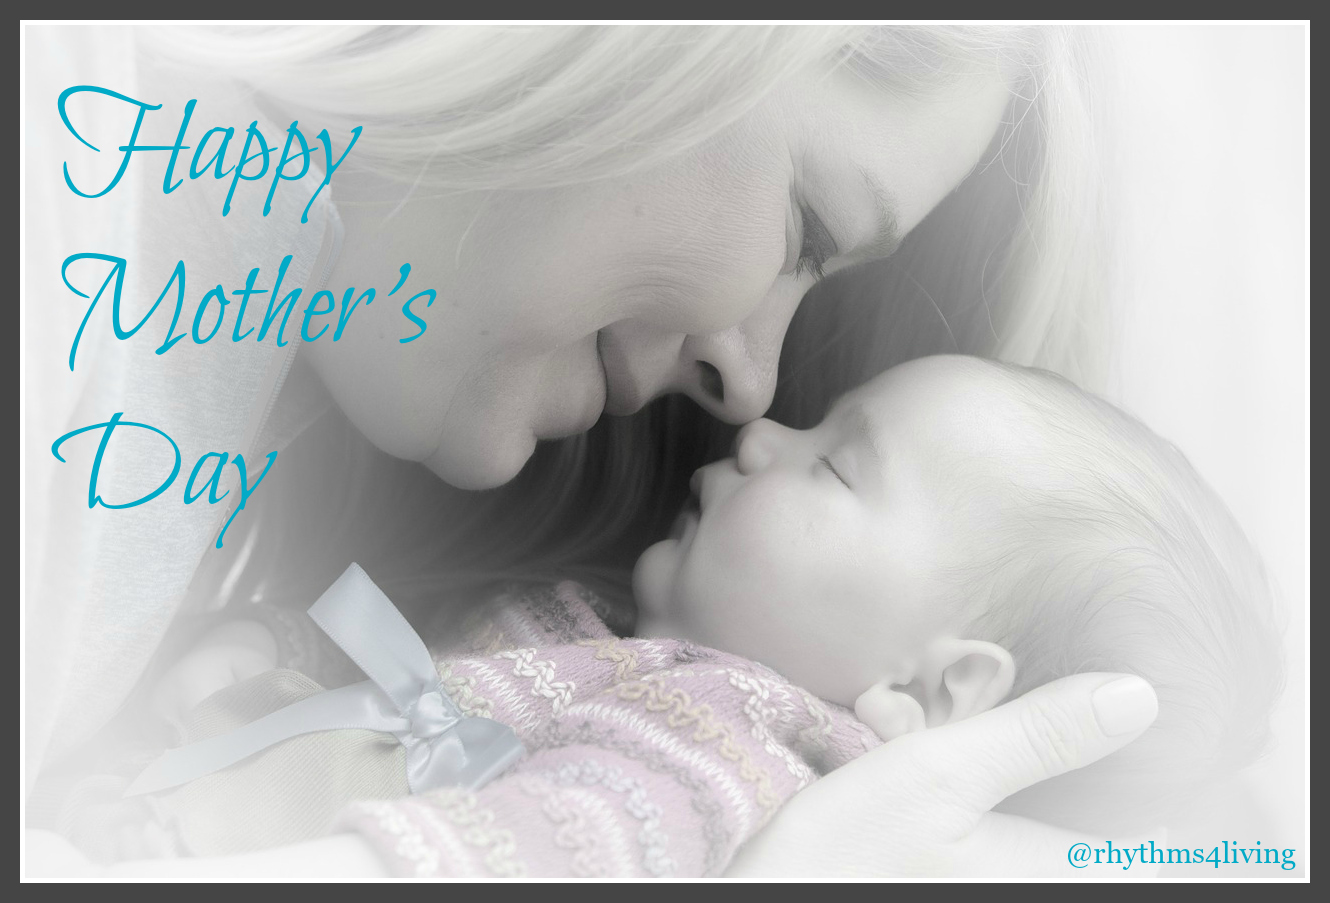 Celebrating Mothers: Happy Mother's Day